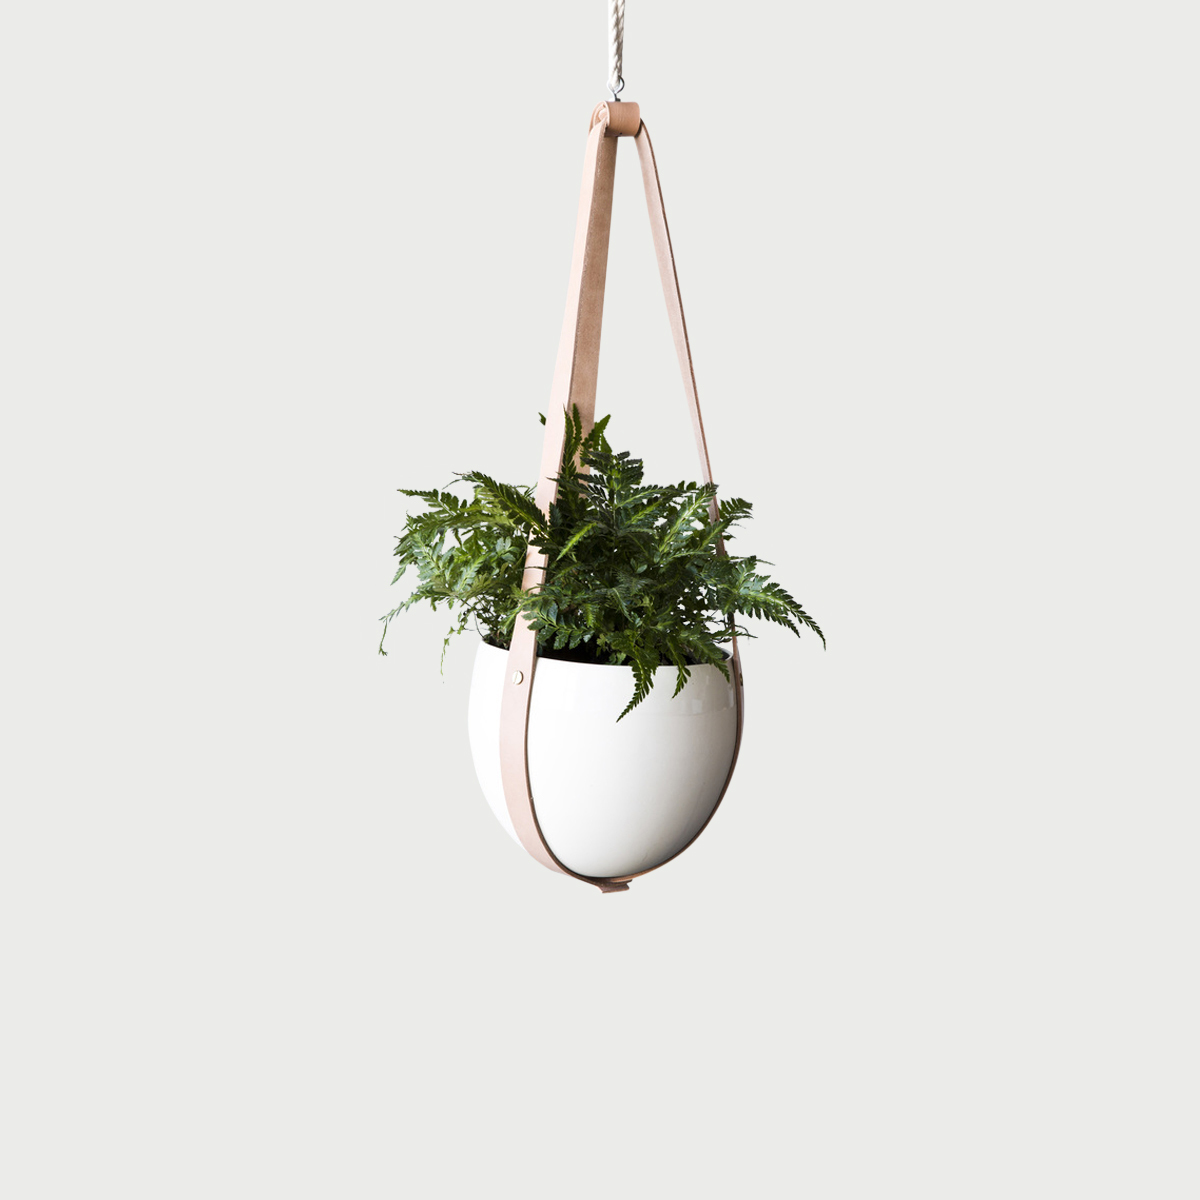 farrah_sit_leather-ceiling-planter_1024 (1).jpg